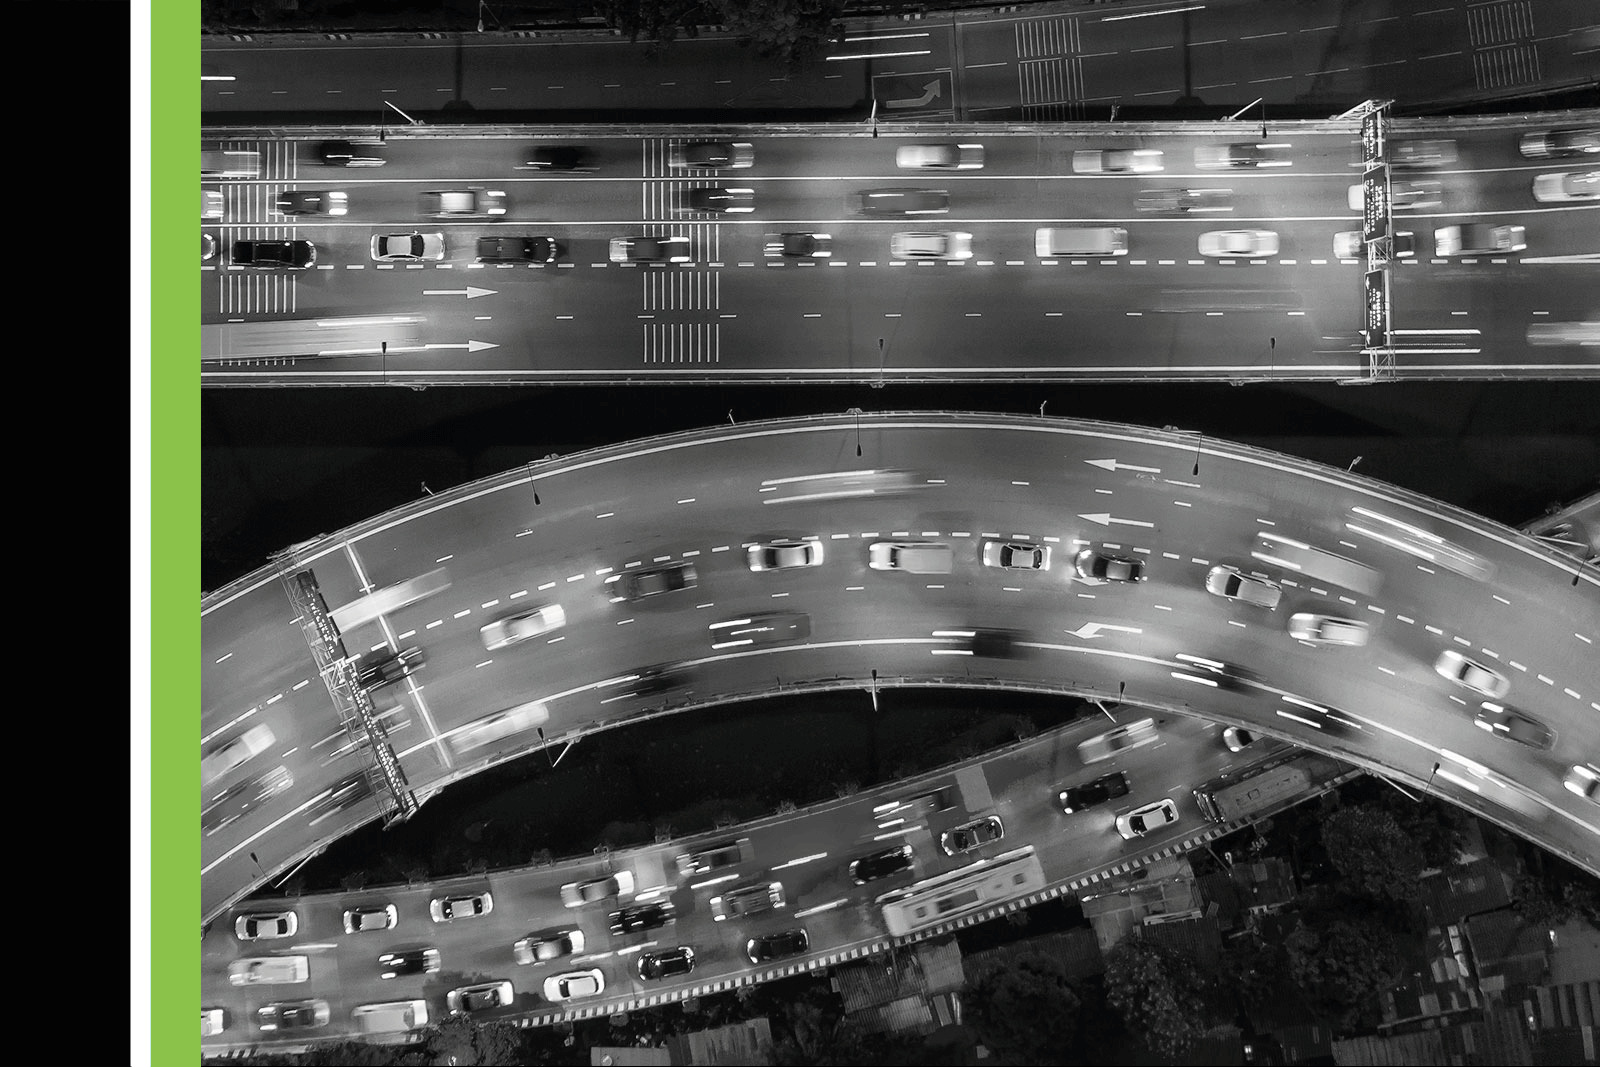 Transport Systems: Global Issues and Future Innovations (FutureLearn)